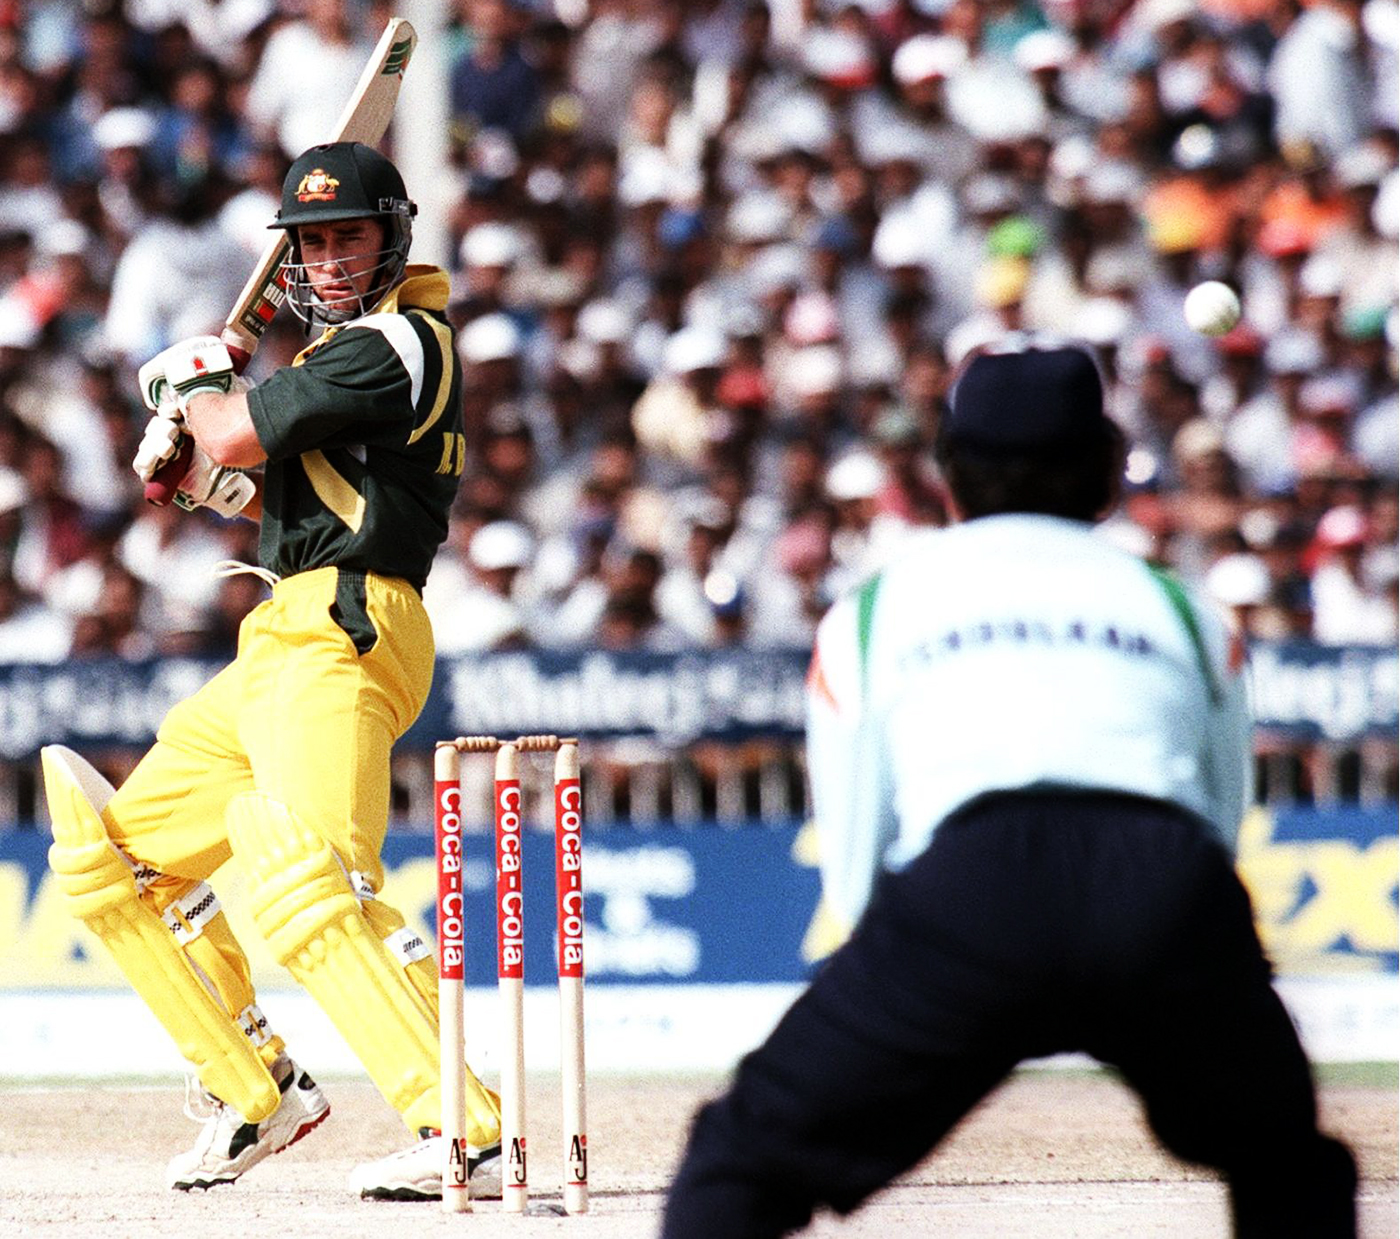 Michael Bevan made 101 not out in the last league game, which India lost. But they still managed to qualify for the tri-series final